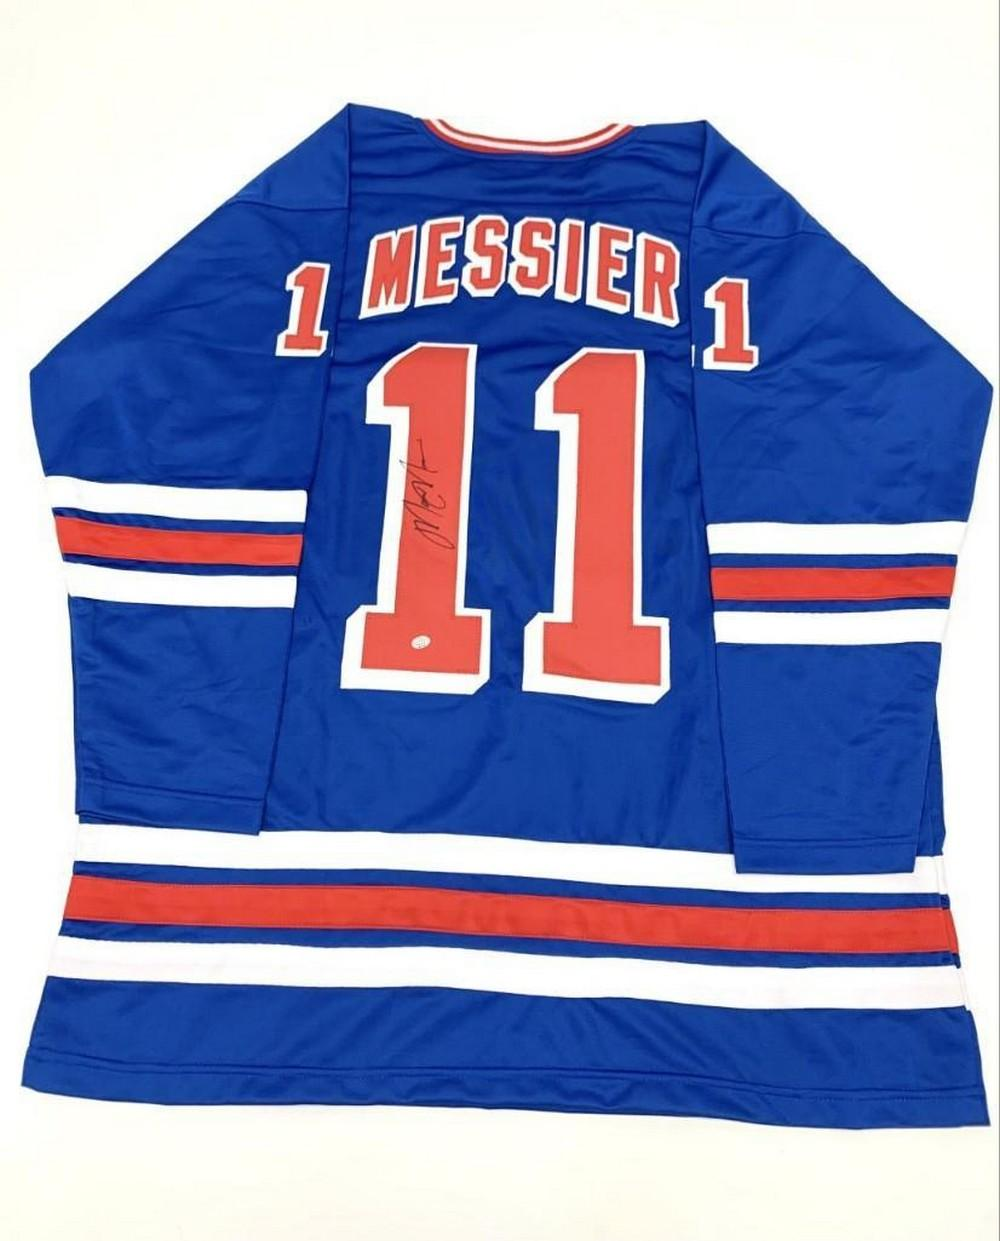 Authentic Autographed Mark Messier #11 New York Rangers Home Jersey With COA